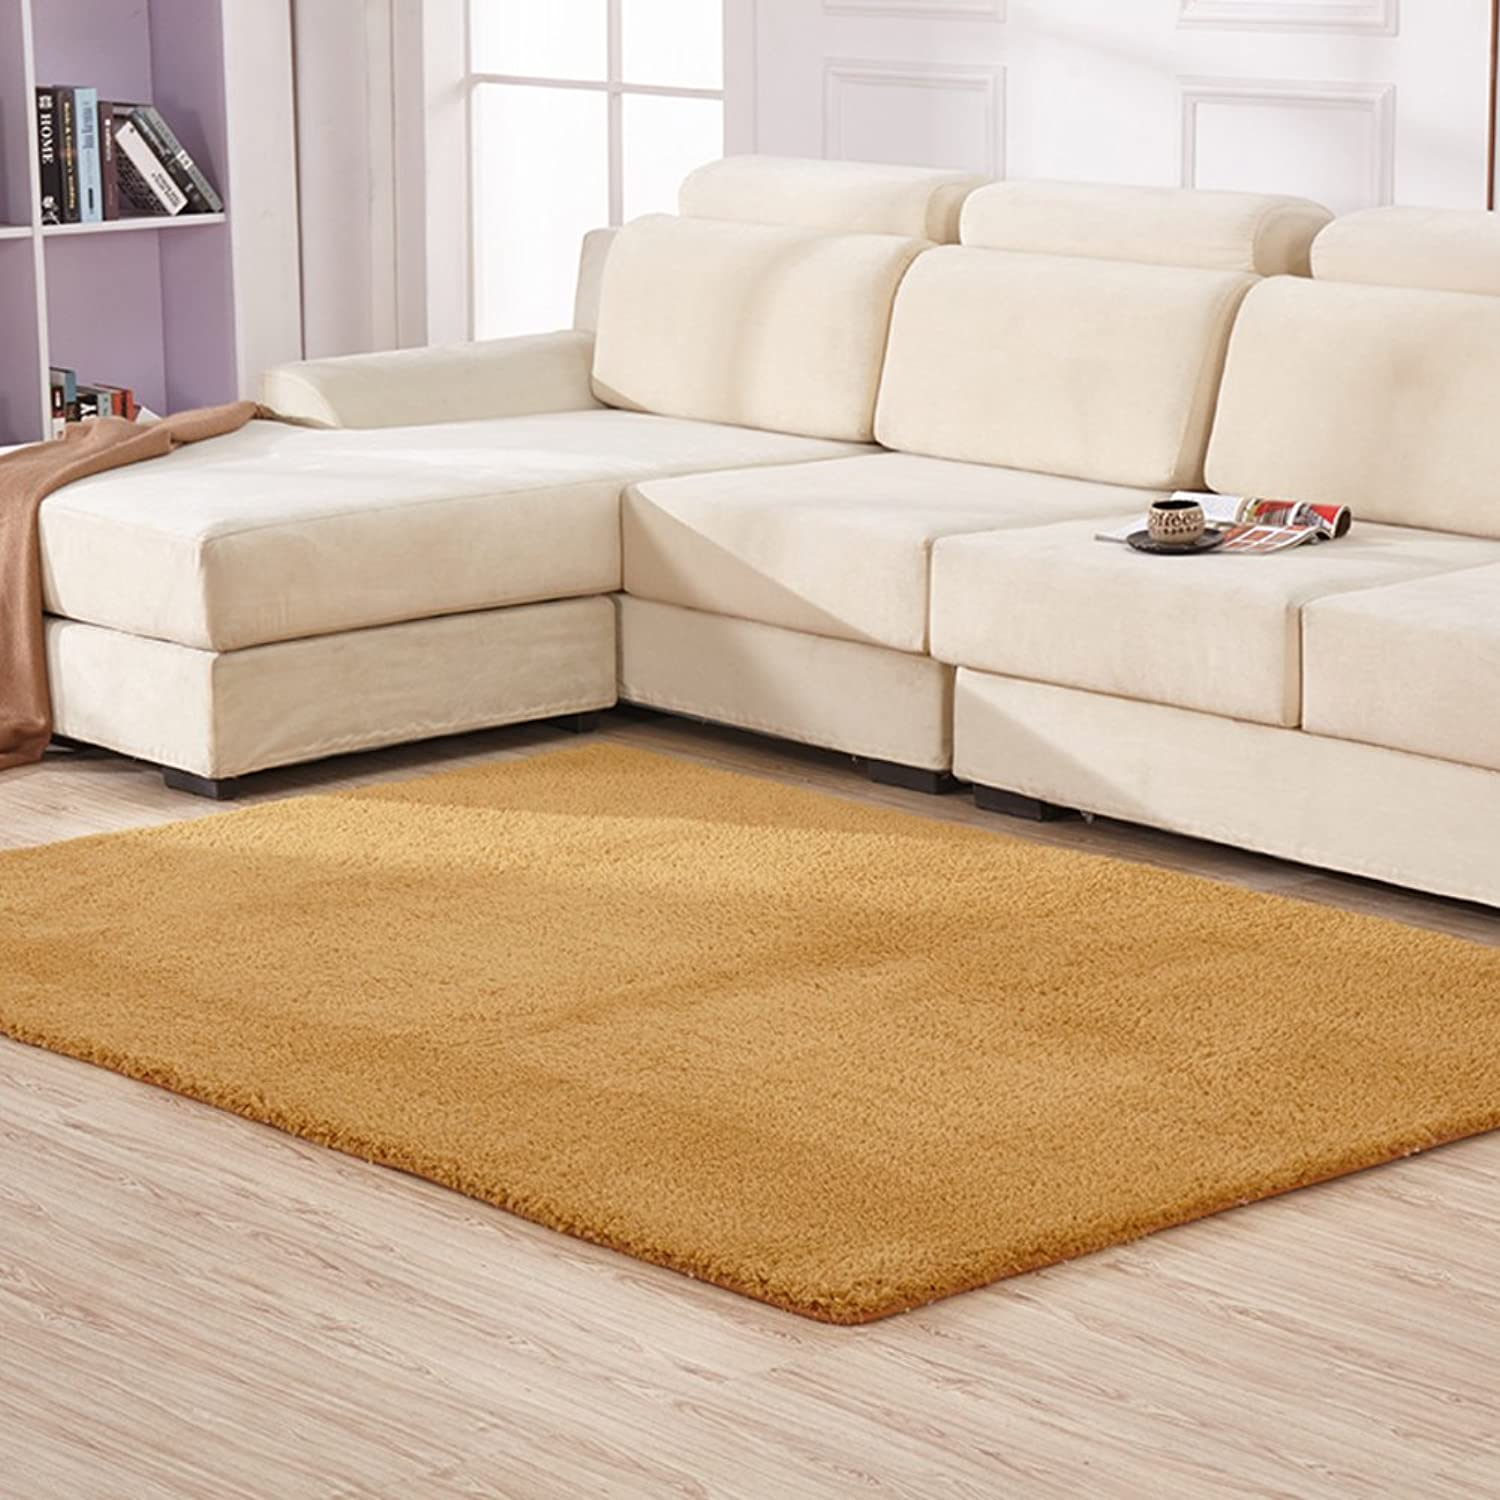 Simple thickened plush carpet Bedroom Living room Tea table blanket Wall-to-wall Bedside blanket Rectangular sofa carpet mat-C 80x160cm(31x63inch)